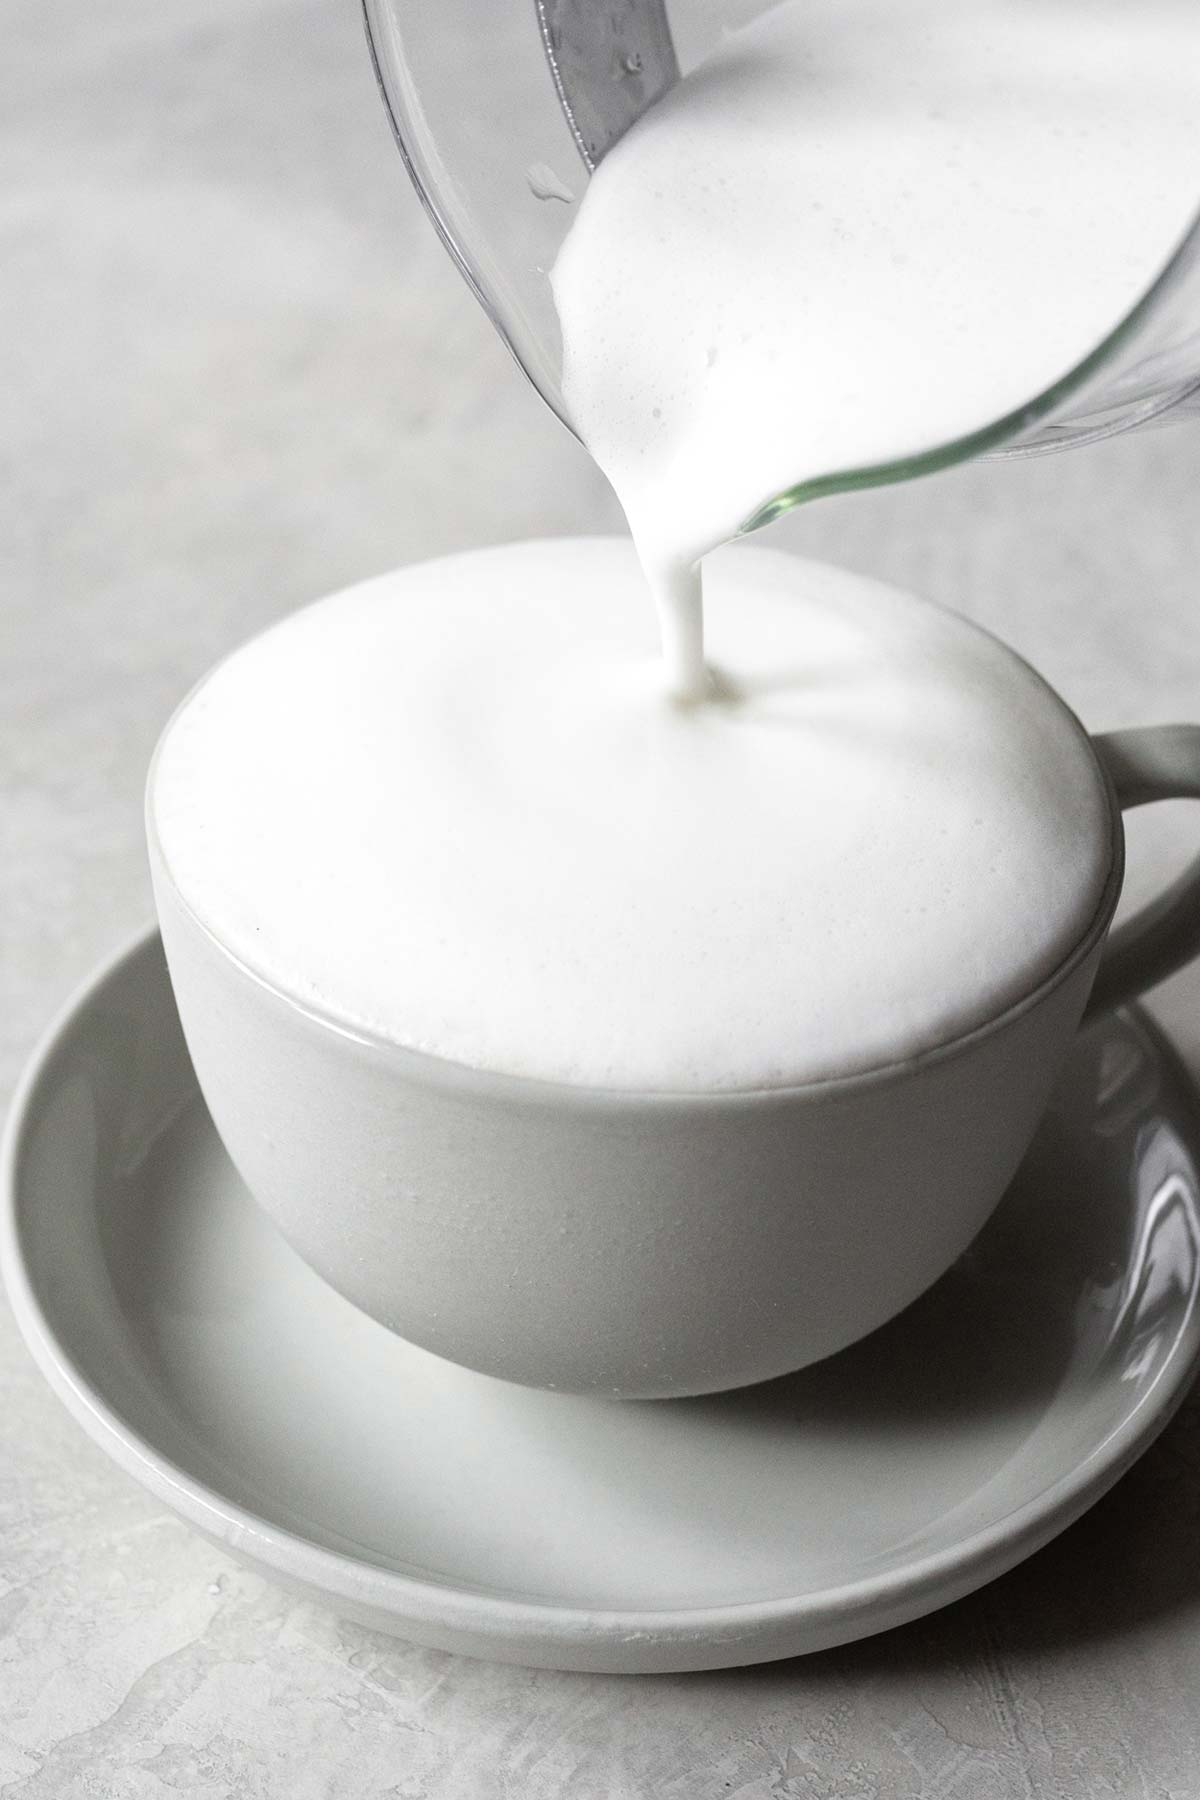 Pouring frothed milk into a cup with Earl Grey tea.